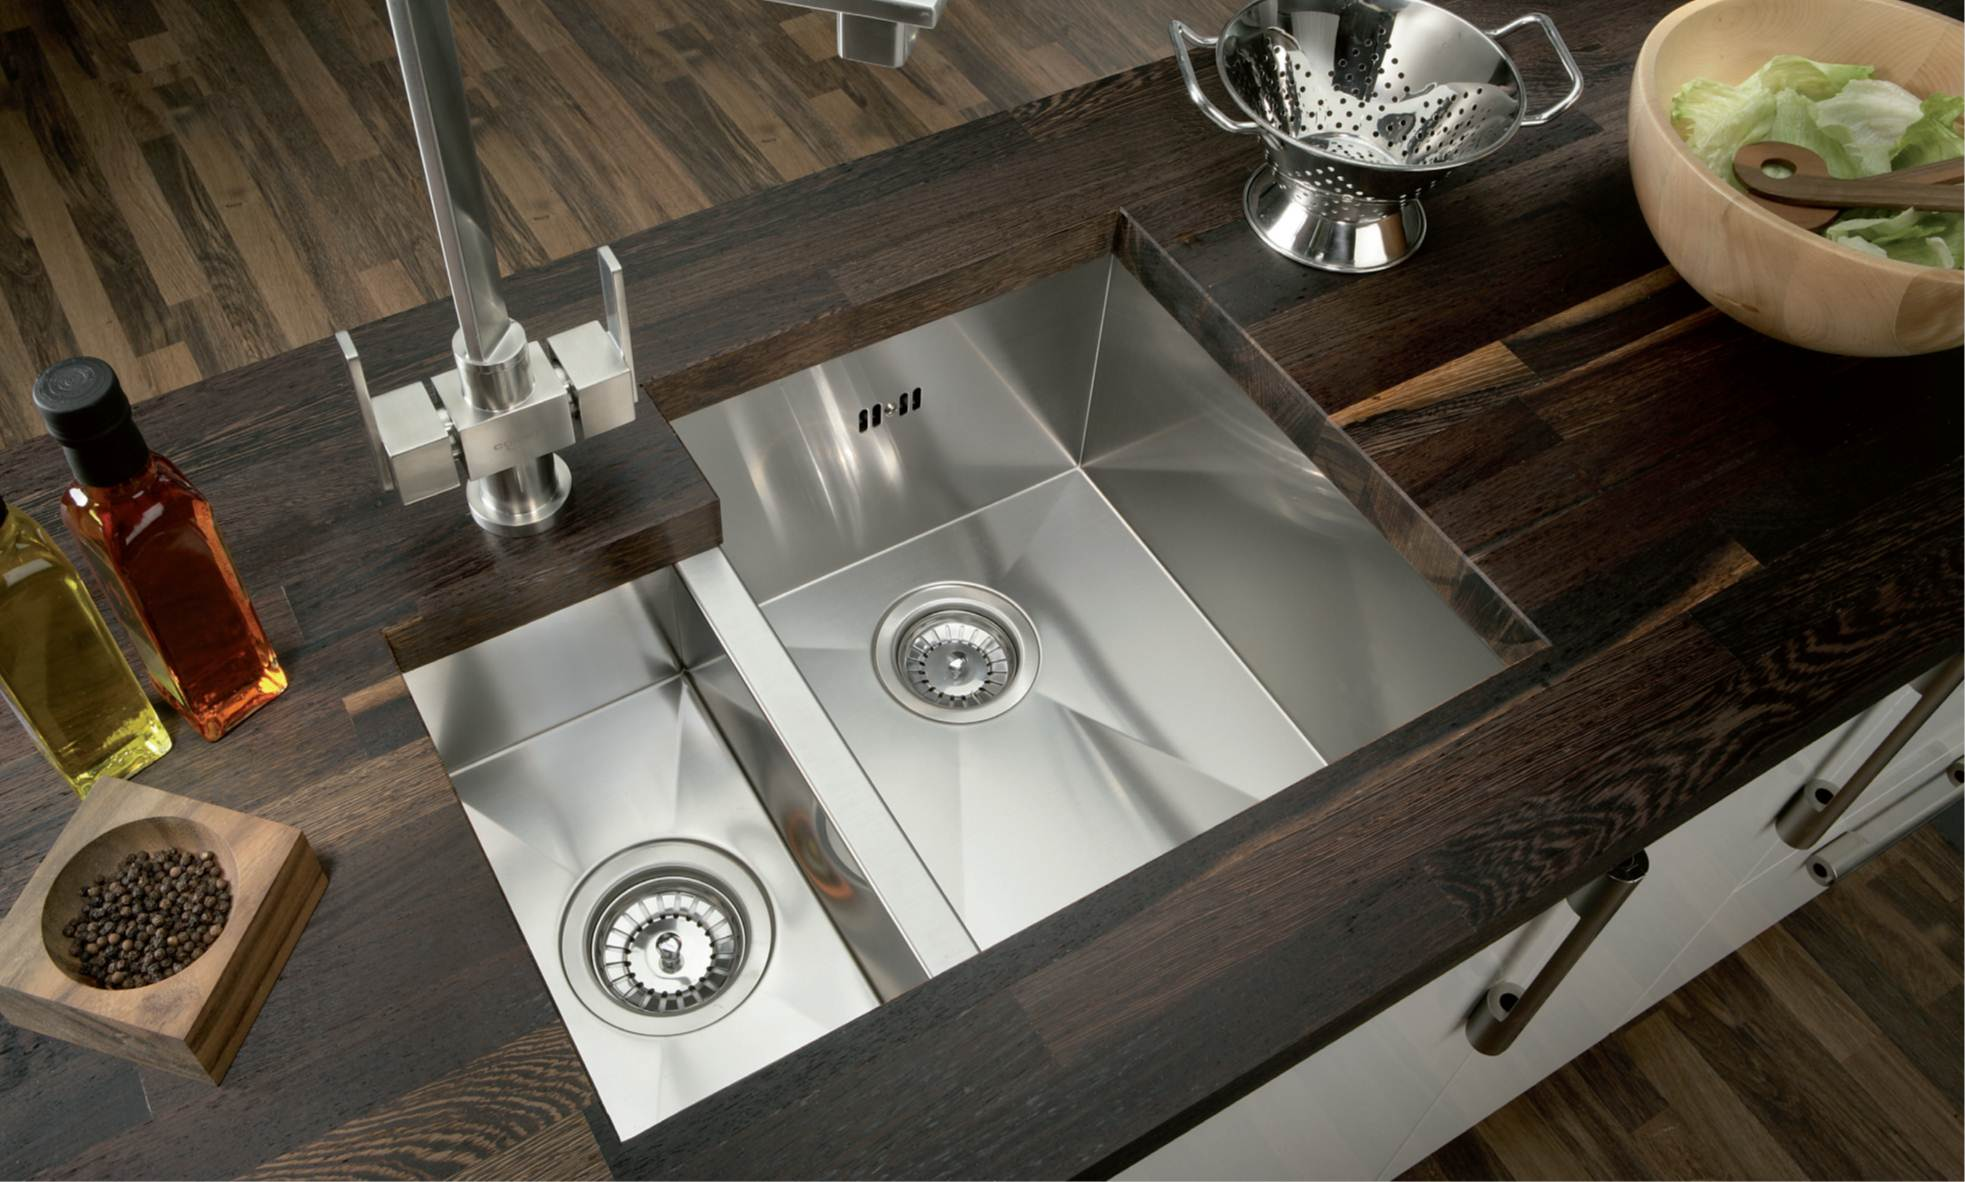 large undermount kitchen sinks kitchen sinks woodworx mauritius 6822